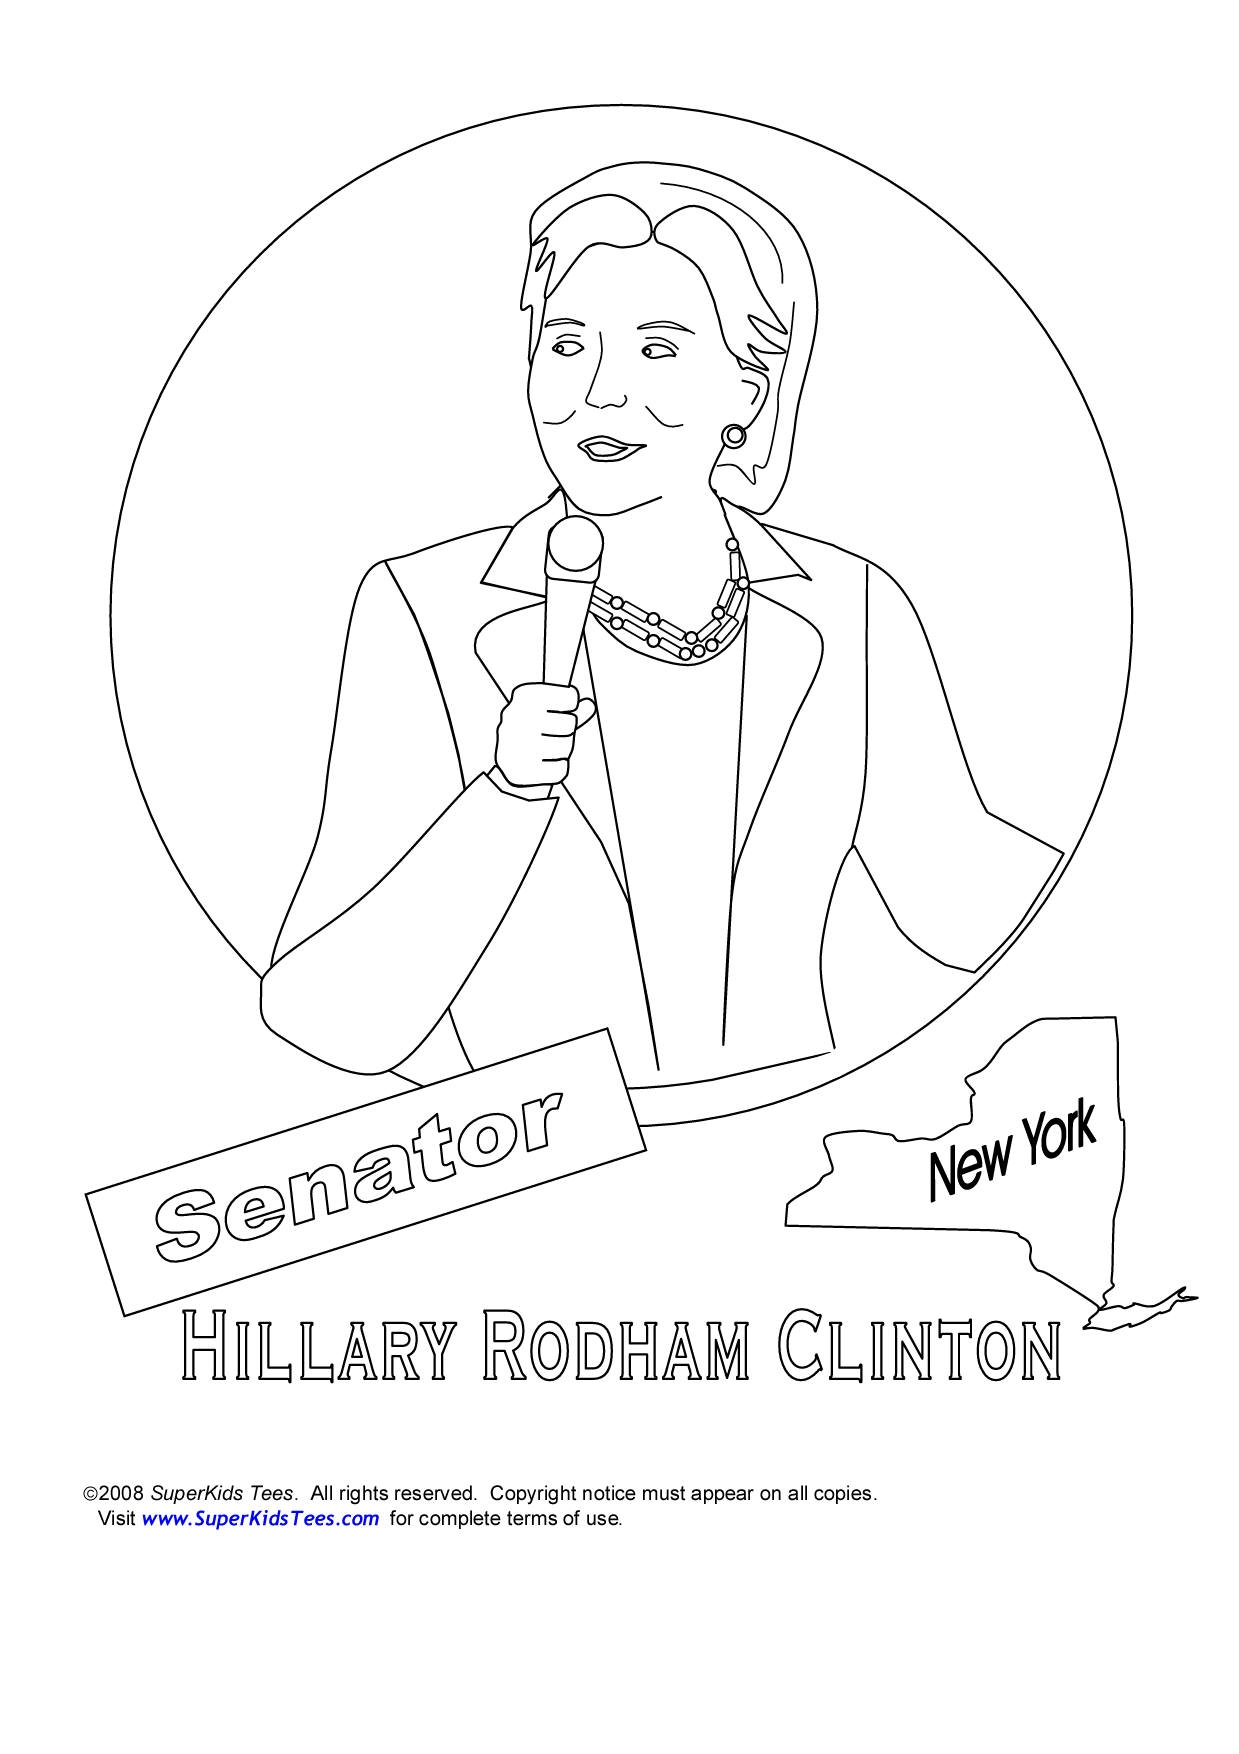 Hillary Clinton Coloring Pages Collection to Print Of Hillary Clinton Coloring Pages Collection to Print